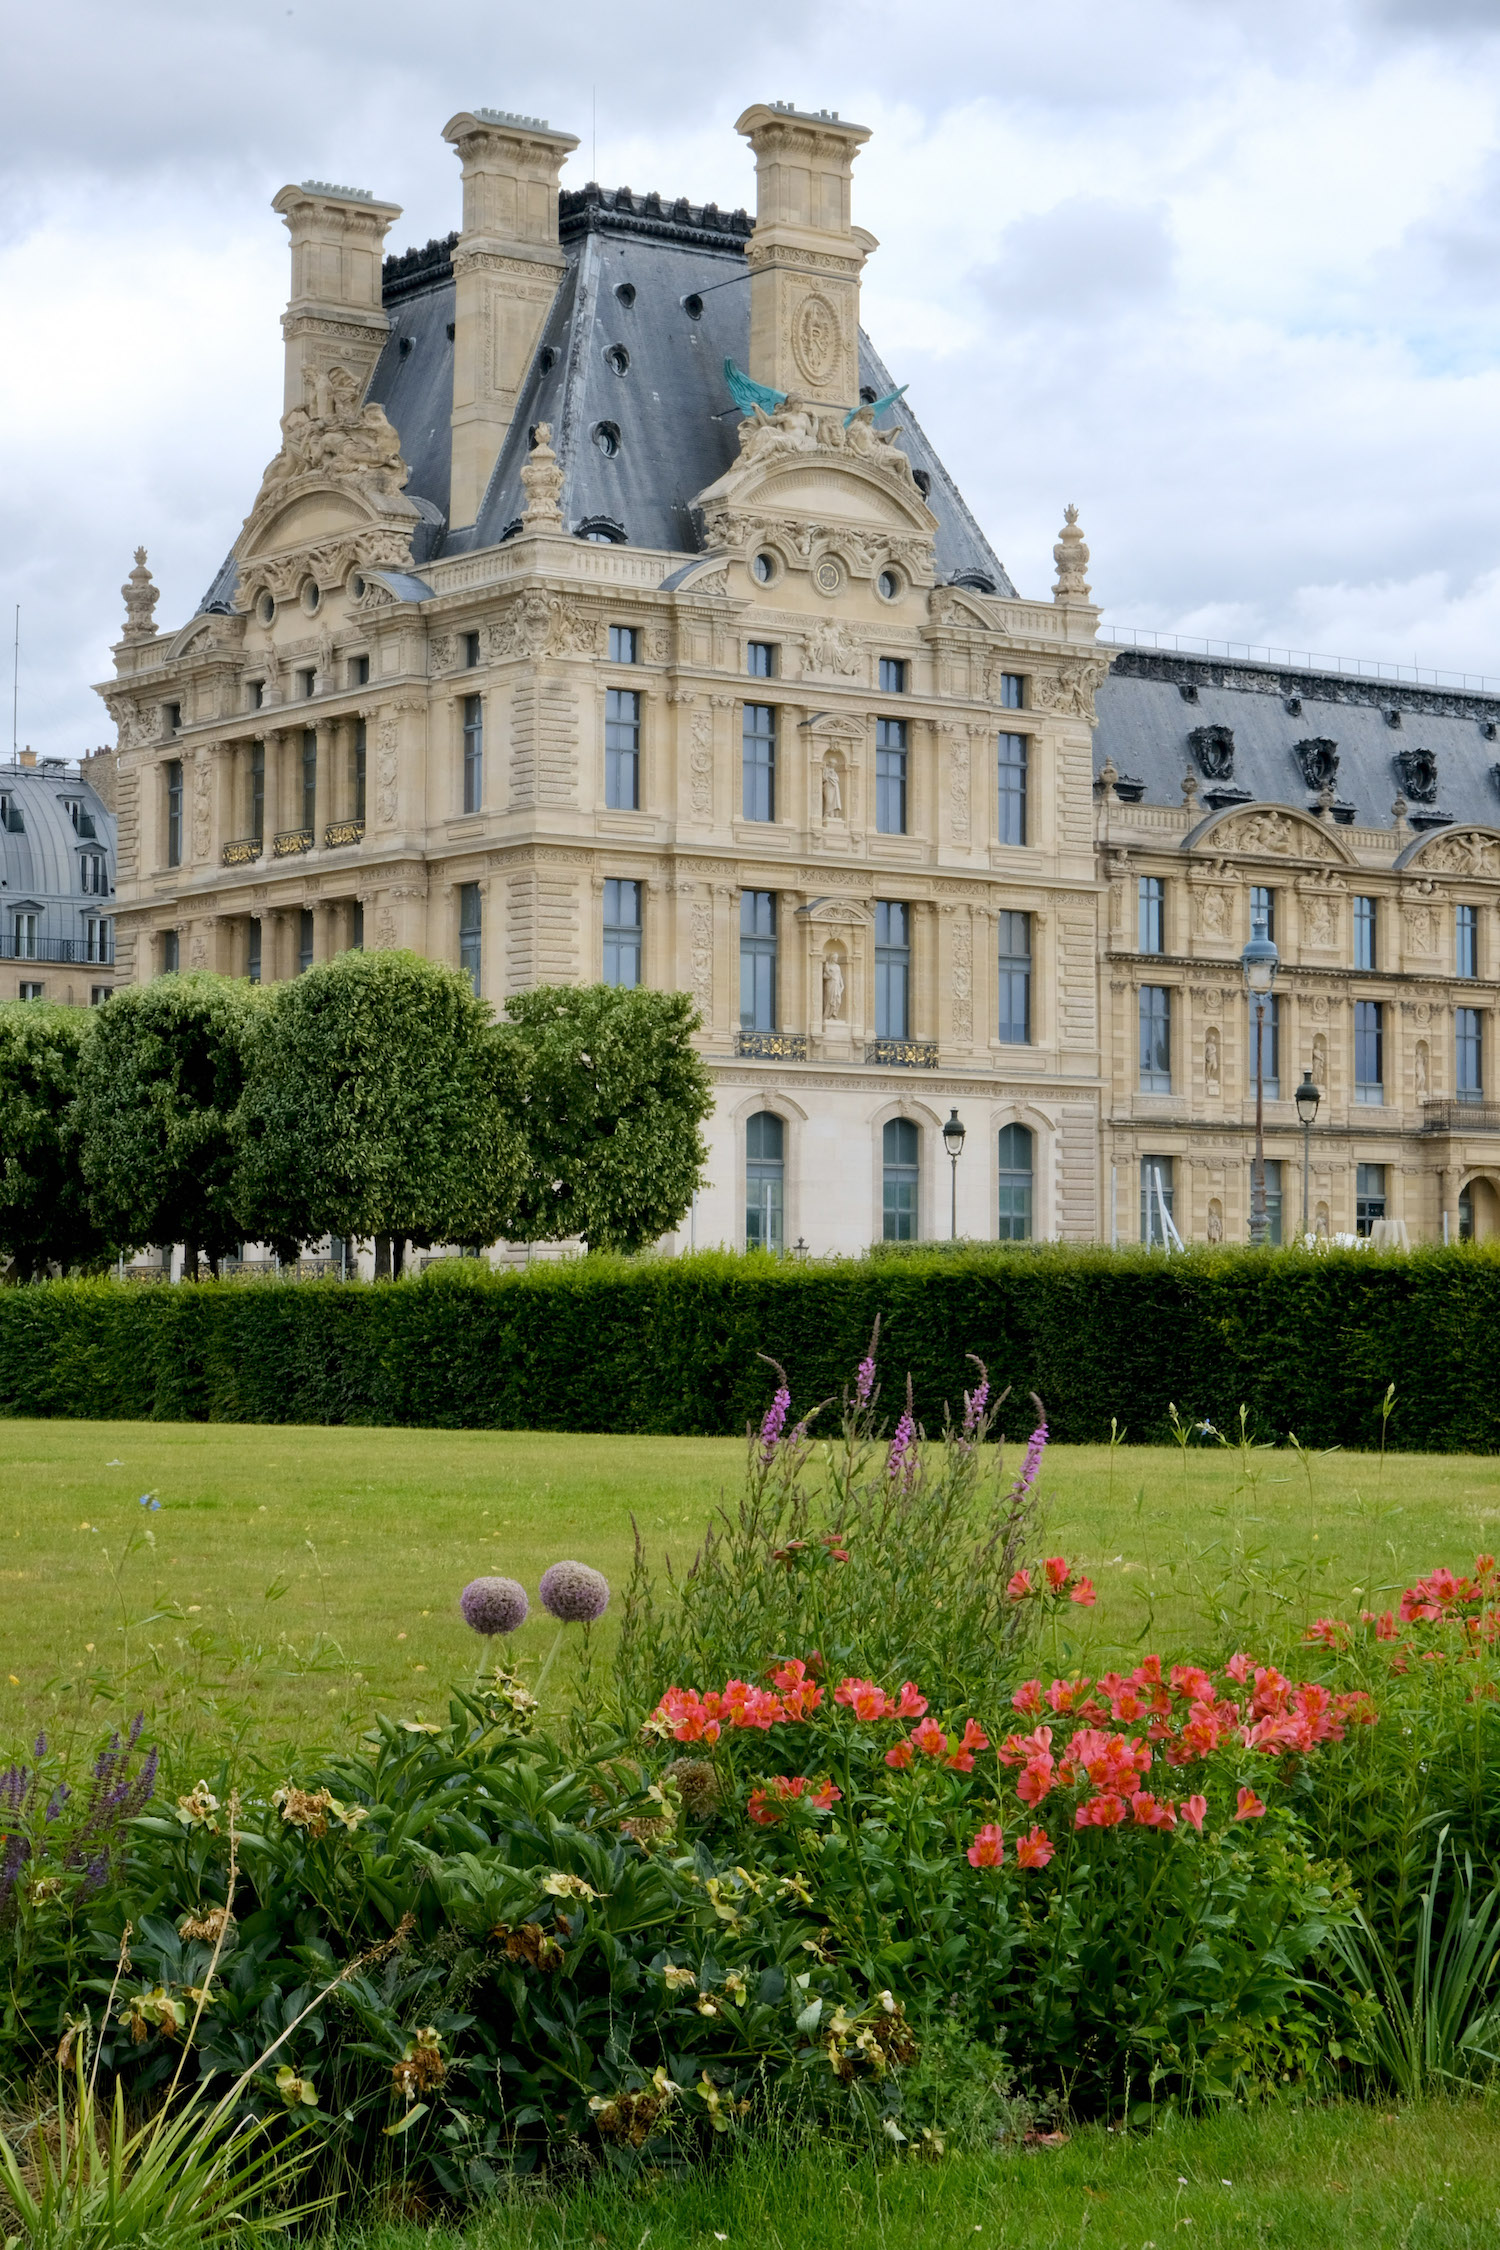 The Tuileries Garden wins the debate between Tuileries versus Luxembourg in Paris